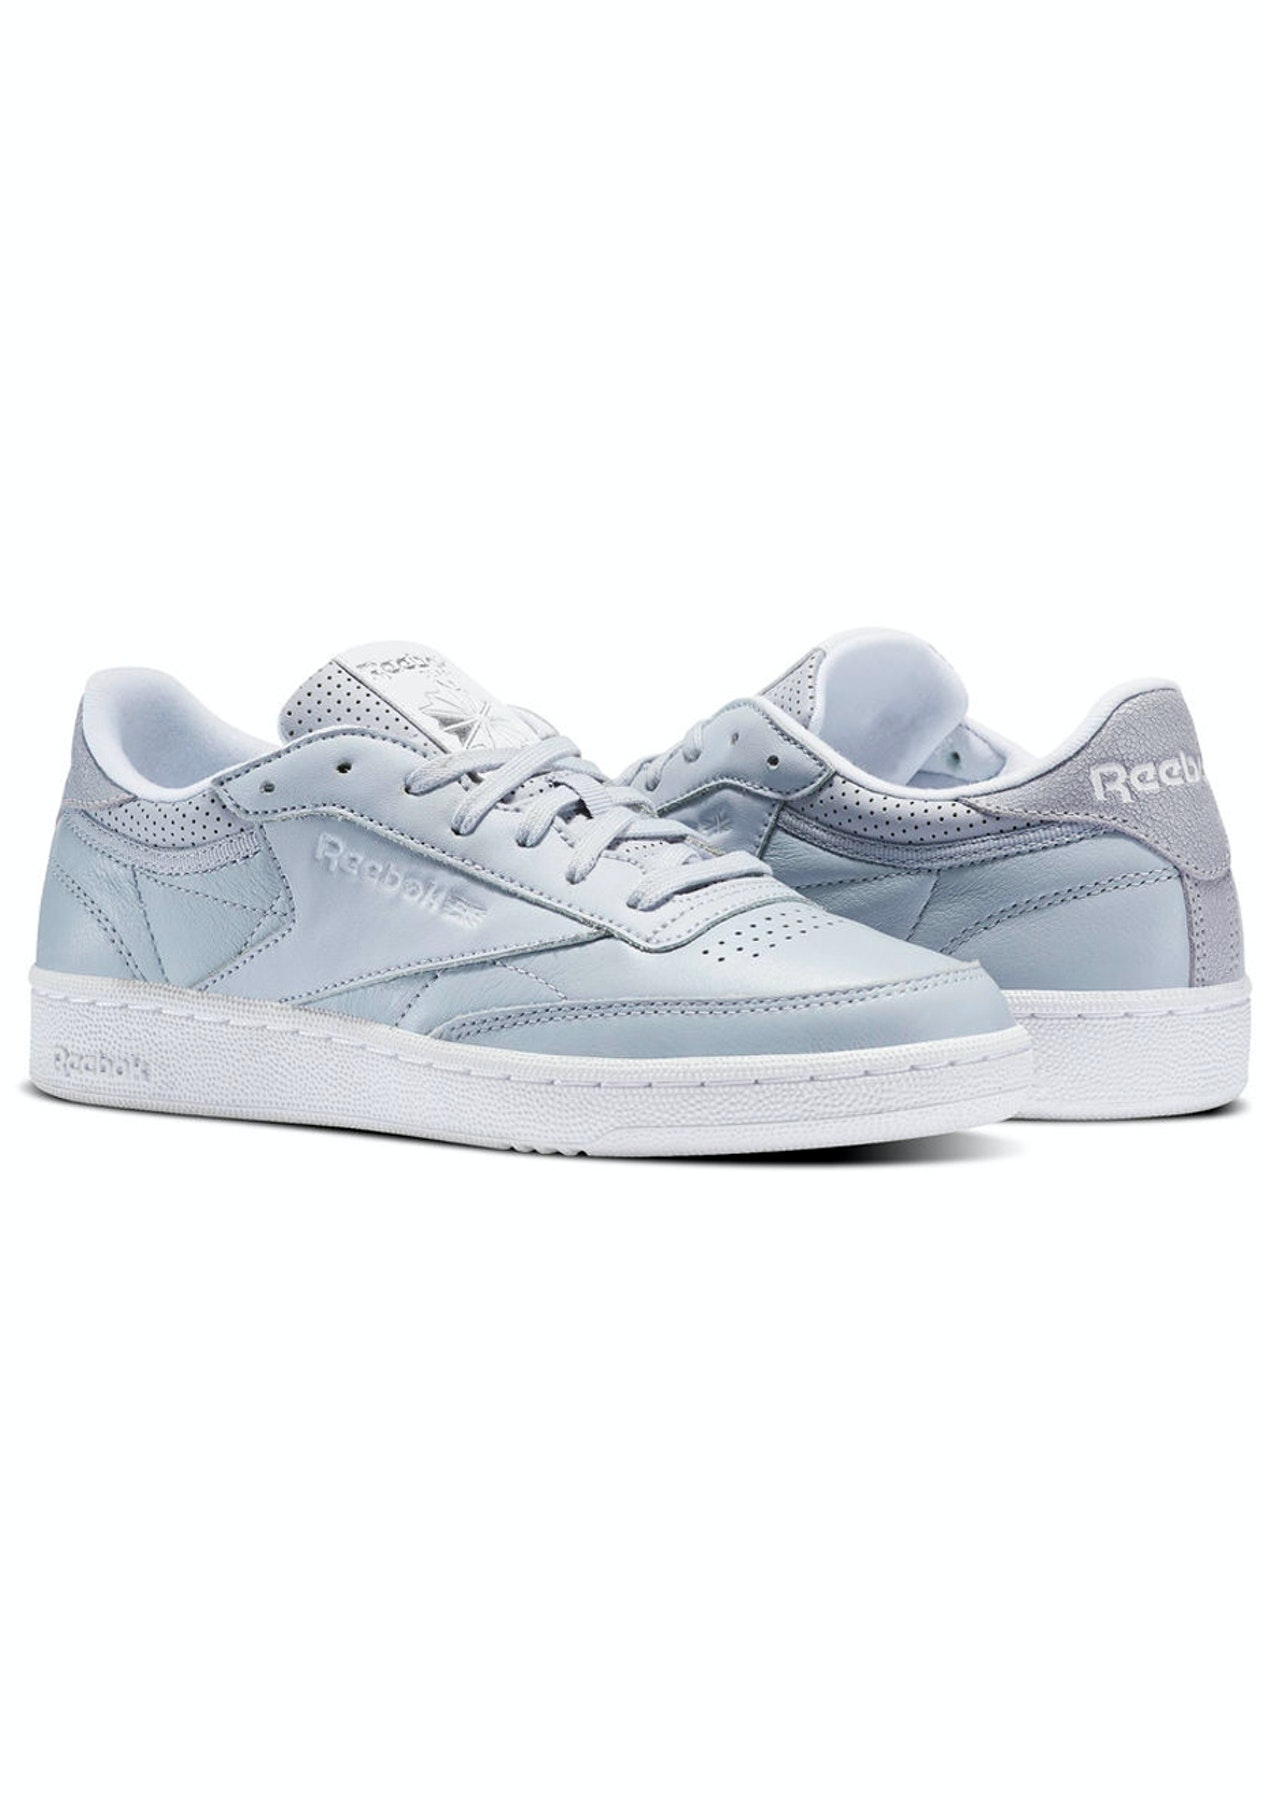 2bb2cac5f54 Reebok Womens - Club C 85 Fbt Cloud Grey White Silver - The Ultimate Workout  Sale - Onceit